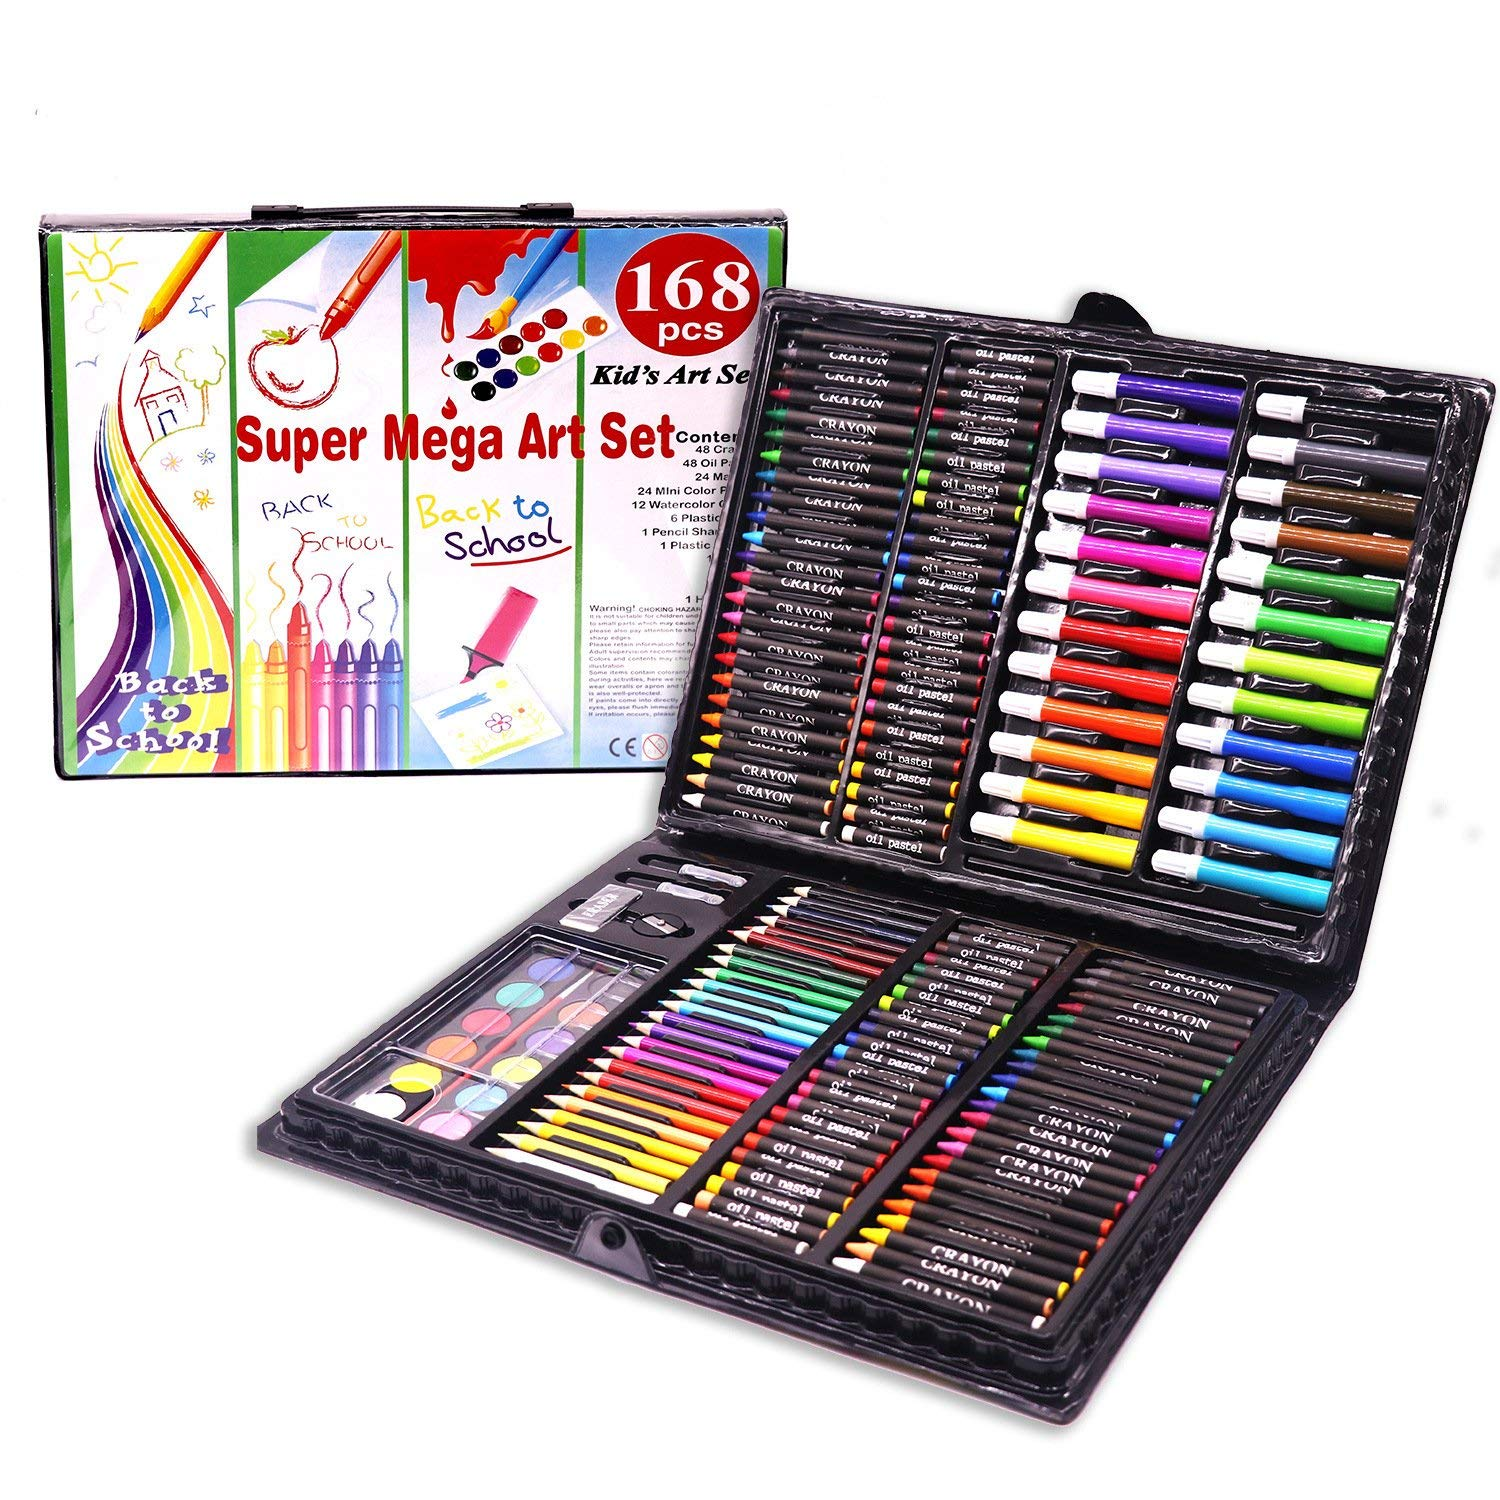 168-Piece Deluxe Art Set – Art Supplies for Drawing, Painting and More in a Compact, Portable Case - Makes a Great Gift for Beginner and Serious Artists